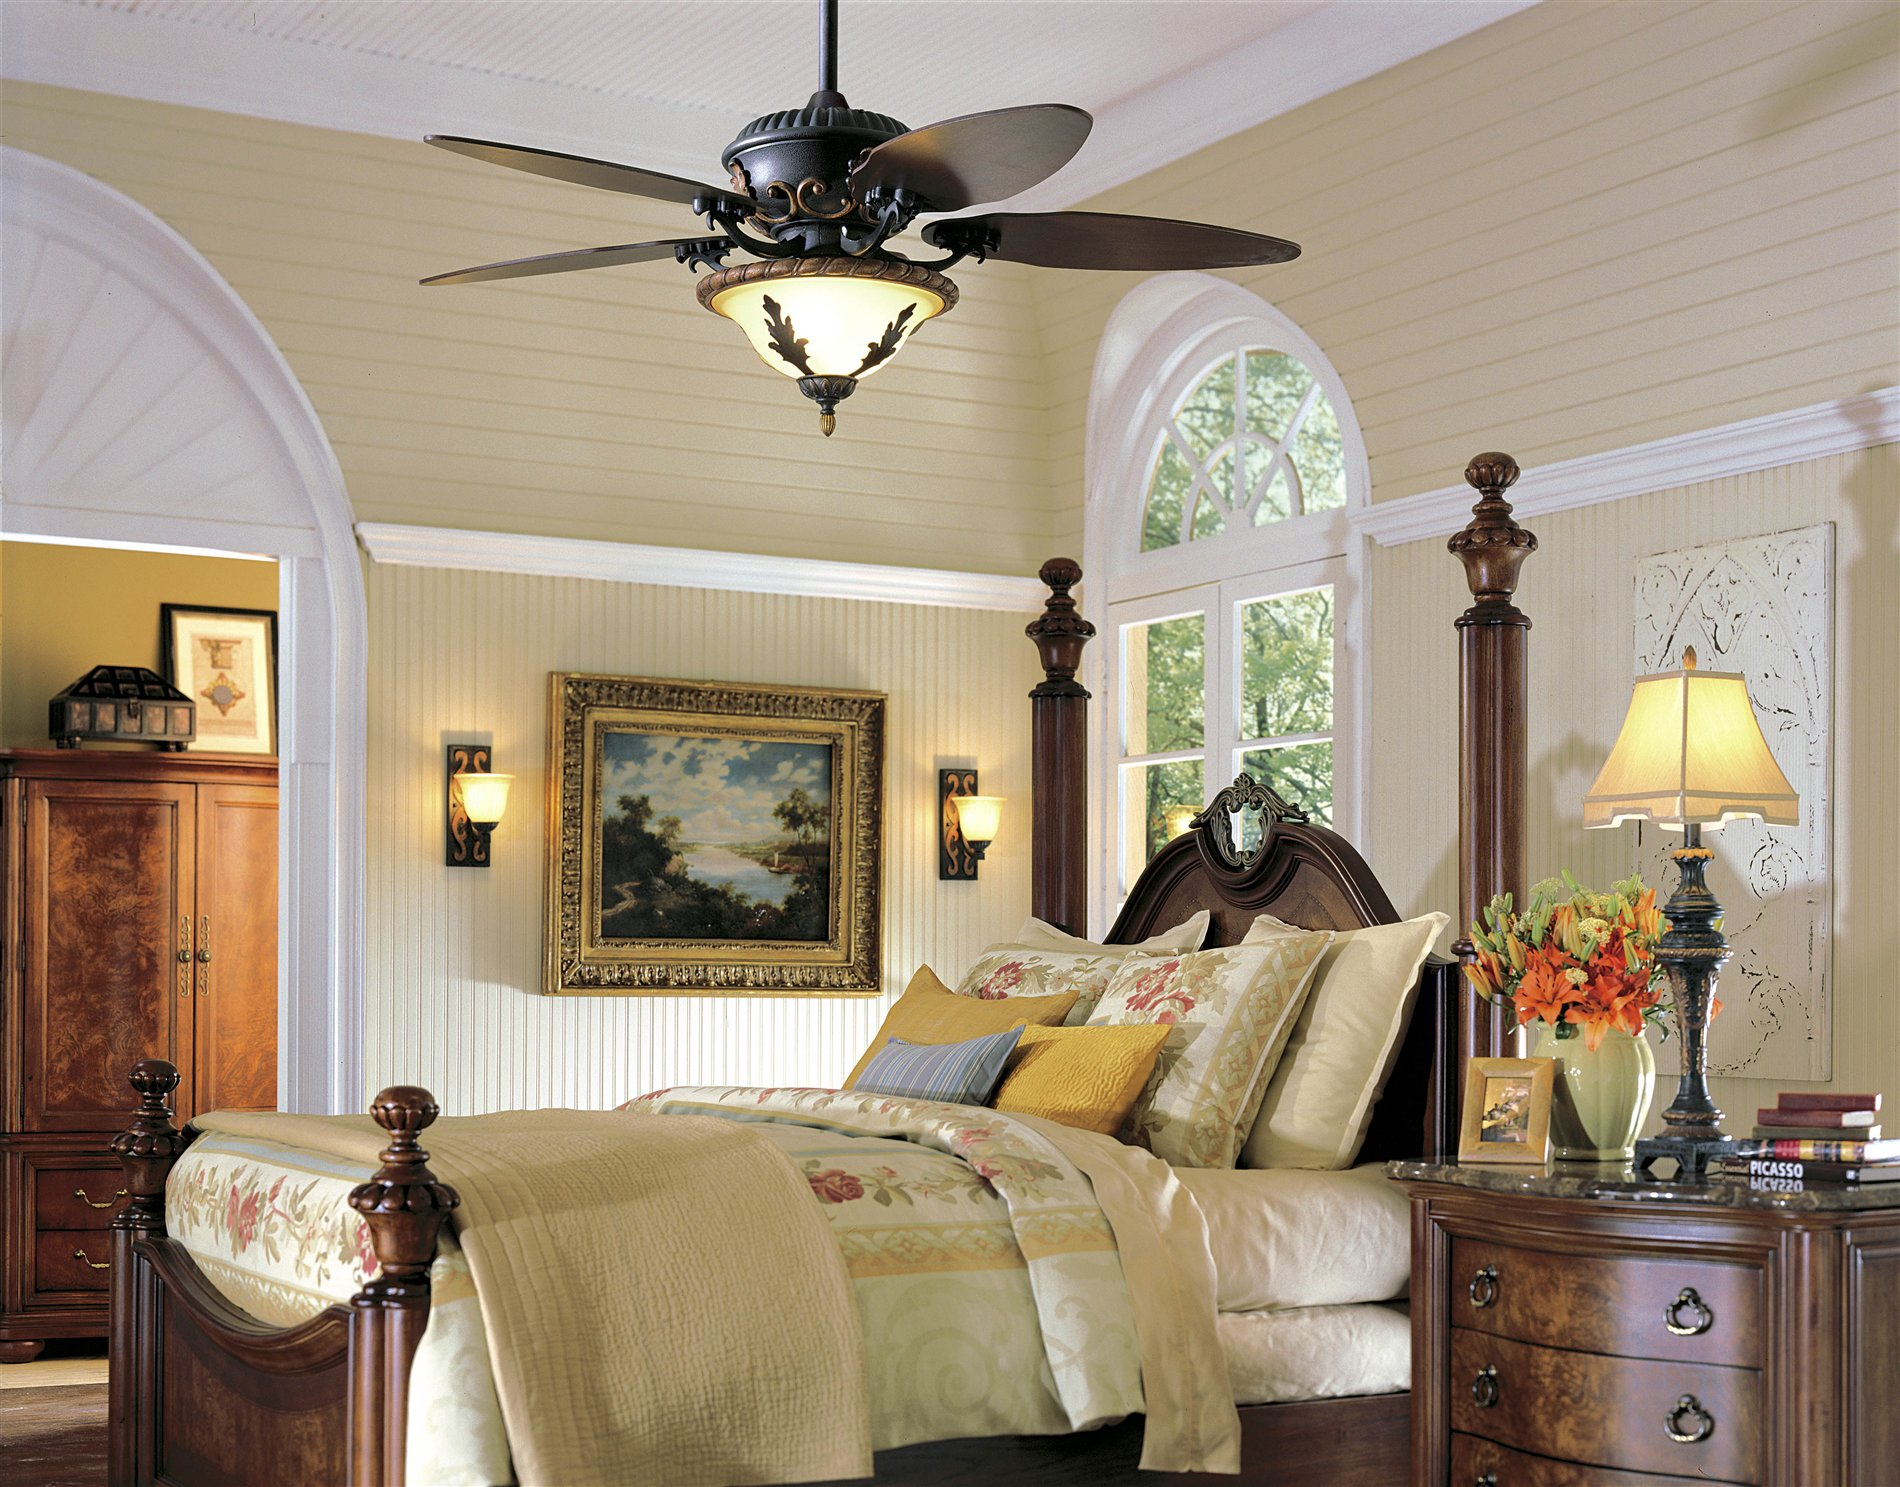 bedroom ceiling fans create a cooling effect with ceiling fan 10299